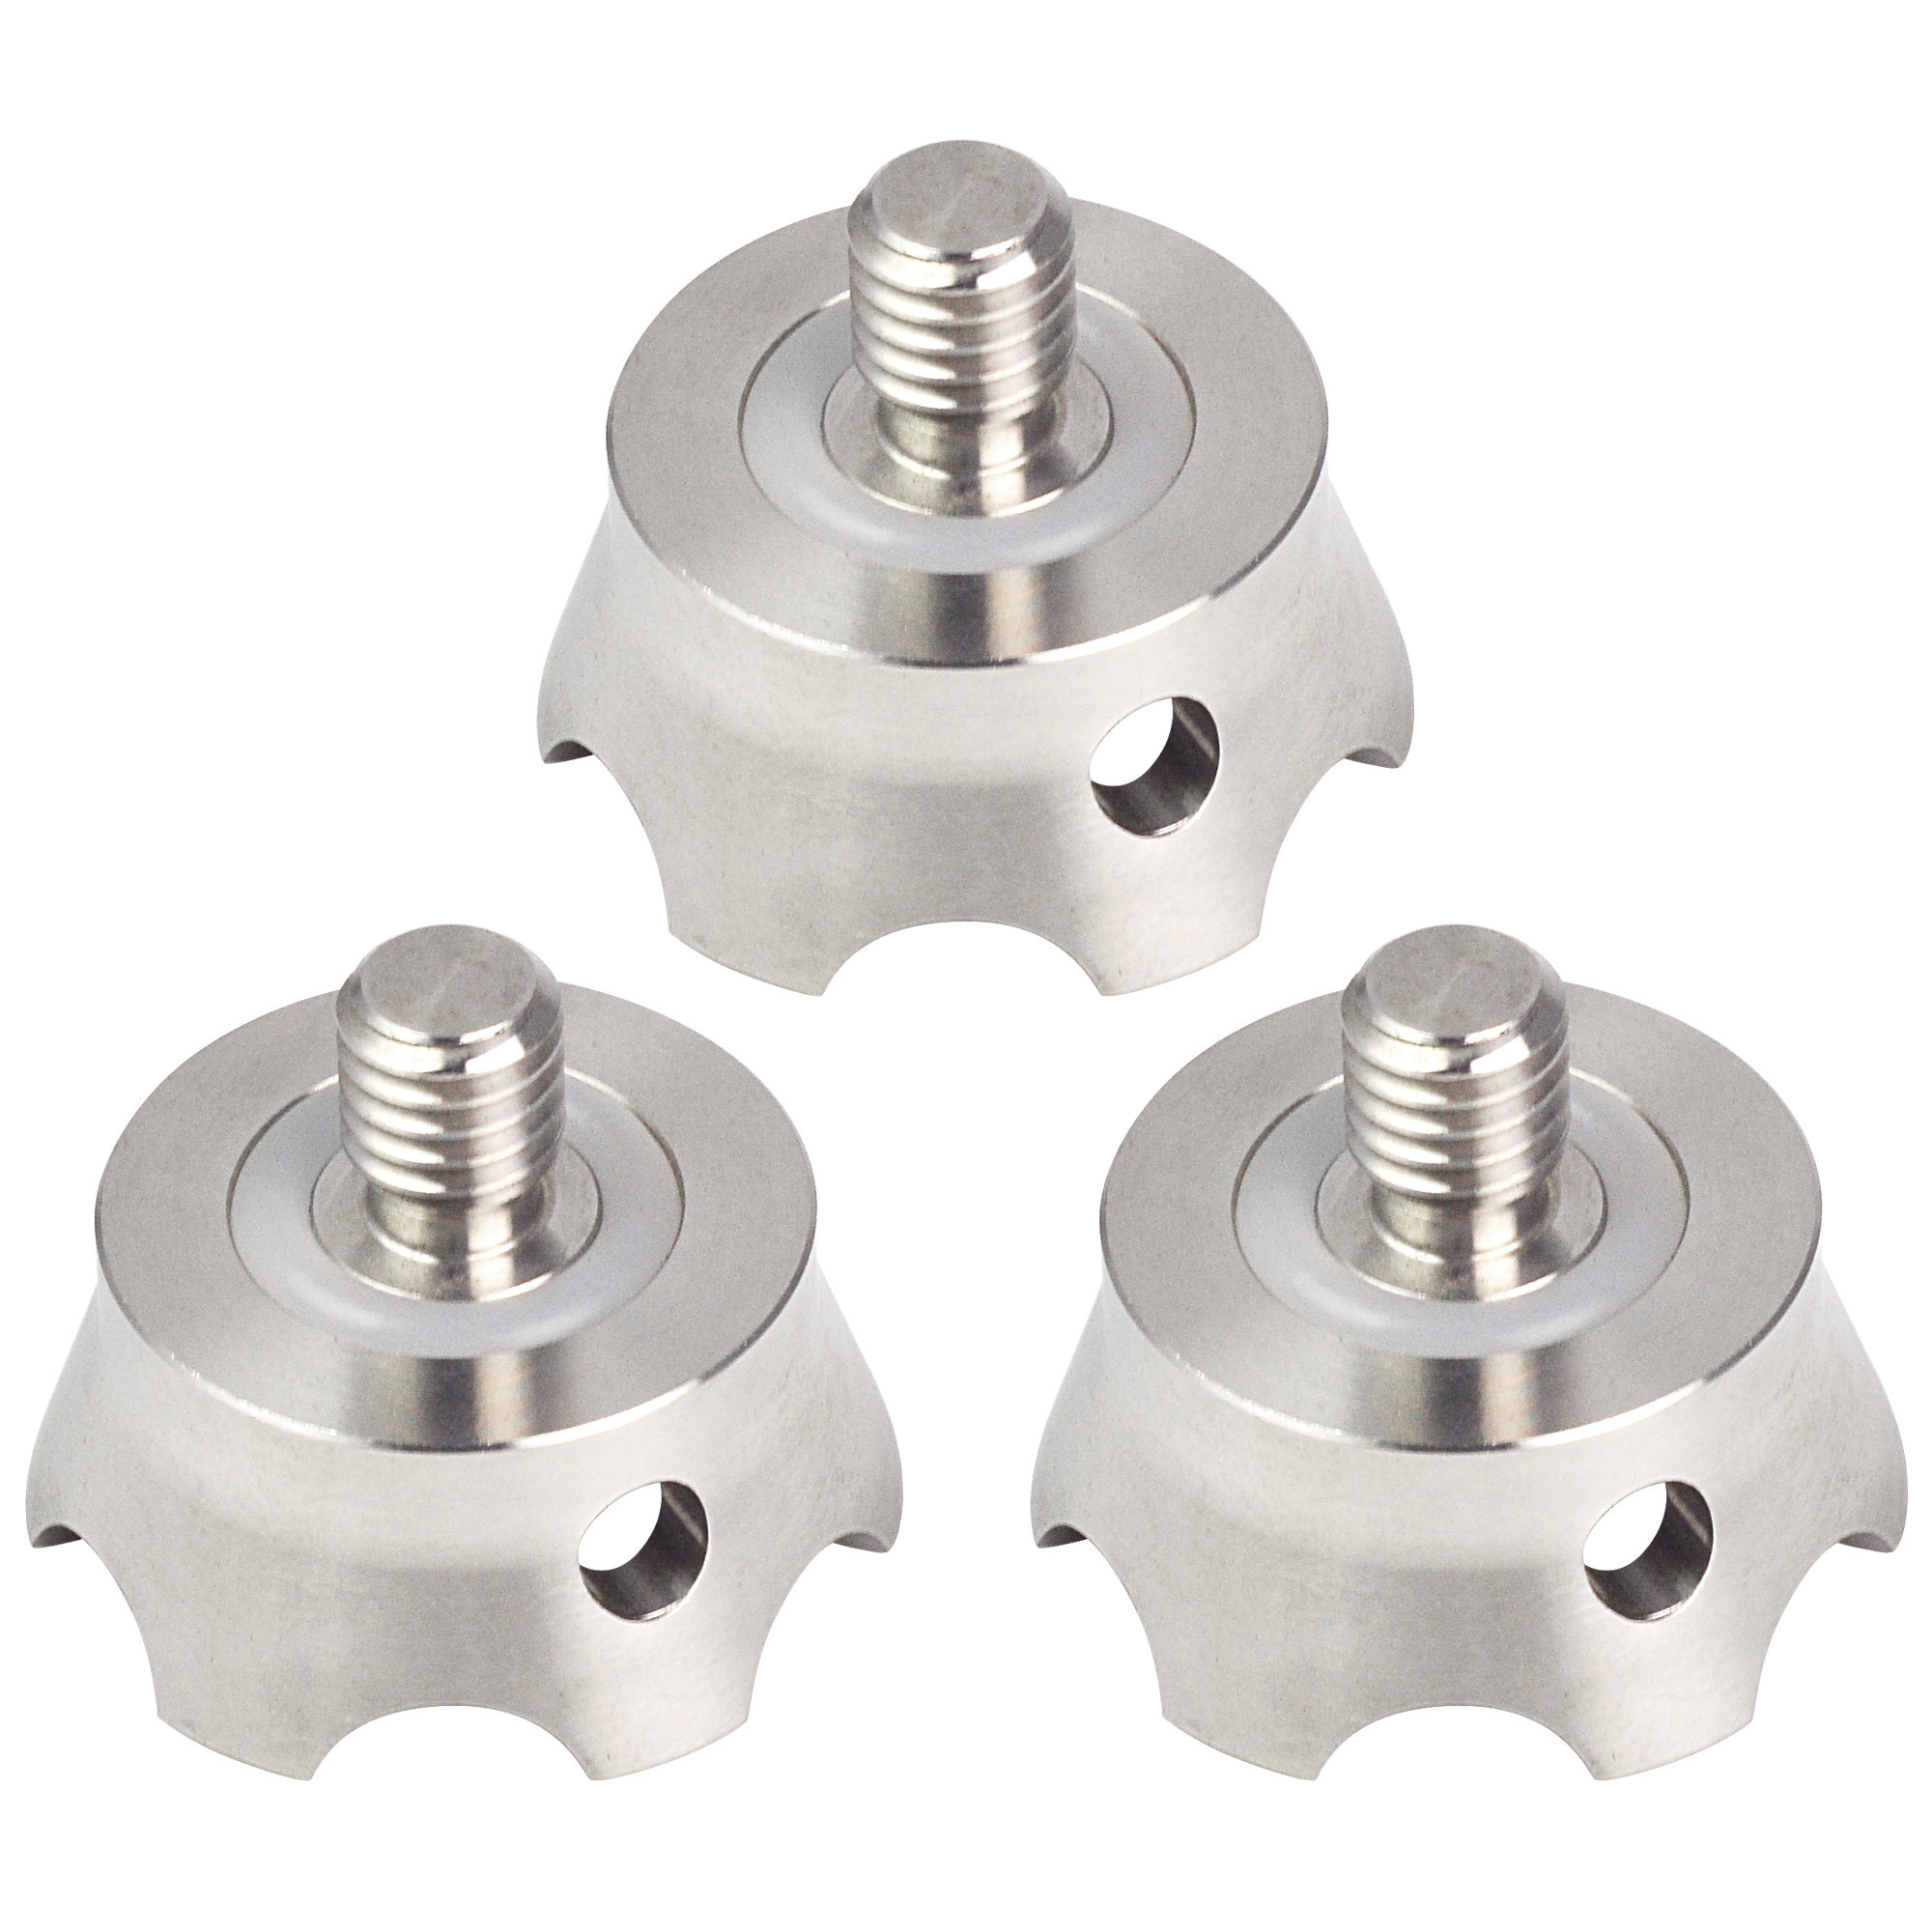 "MENGS® TS-3 A Set of 3 pieces camera spikes with 3/8"" screw interface compatible with all kinds of tripods and monopods, such as Gitzo, RRS, Benro, and FLM etc"